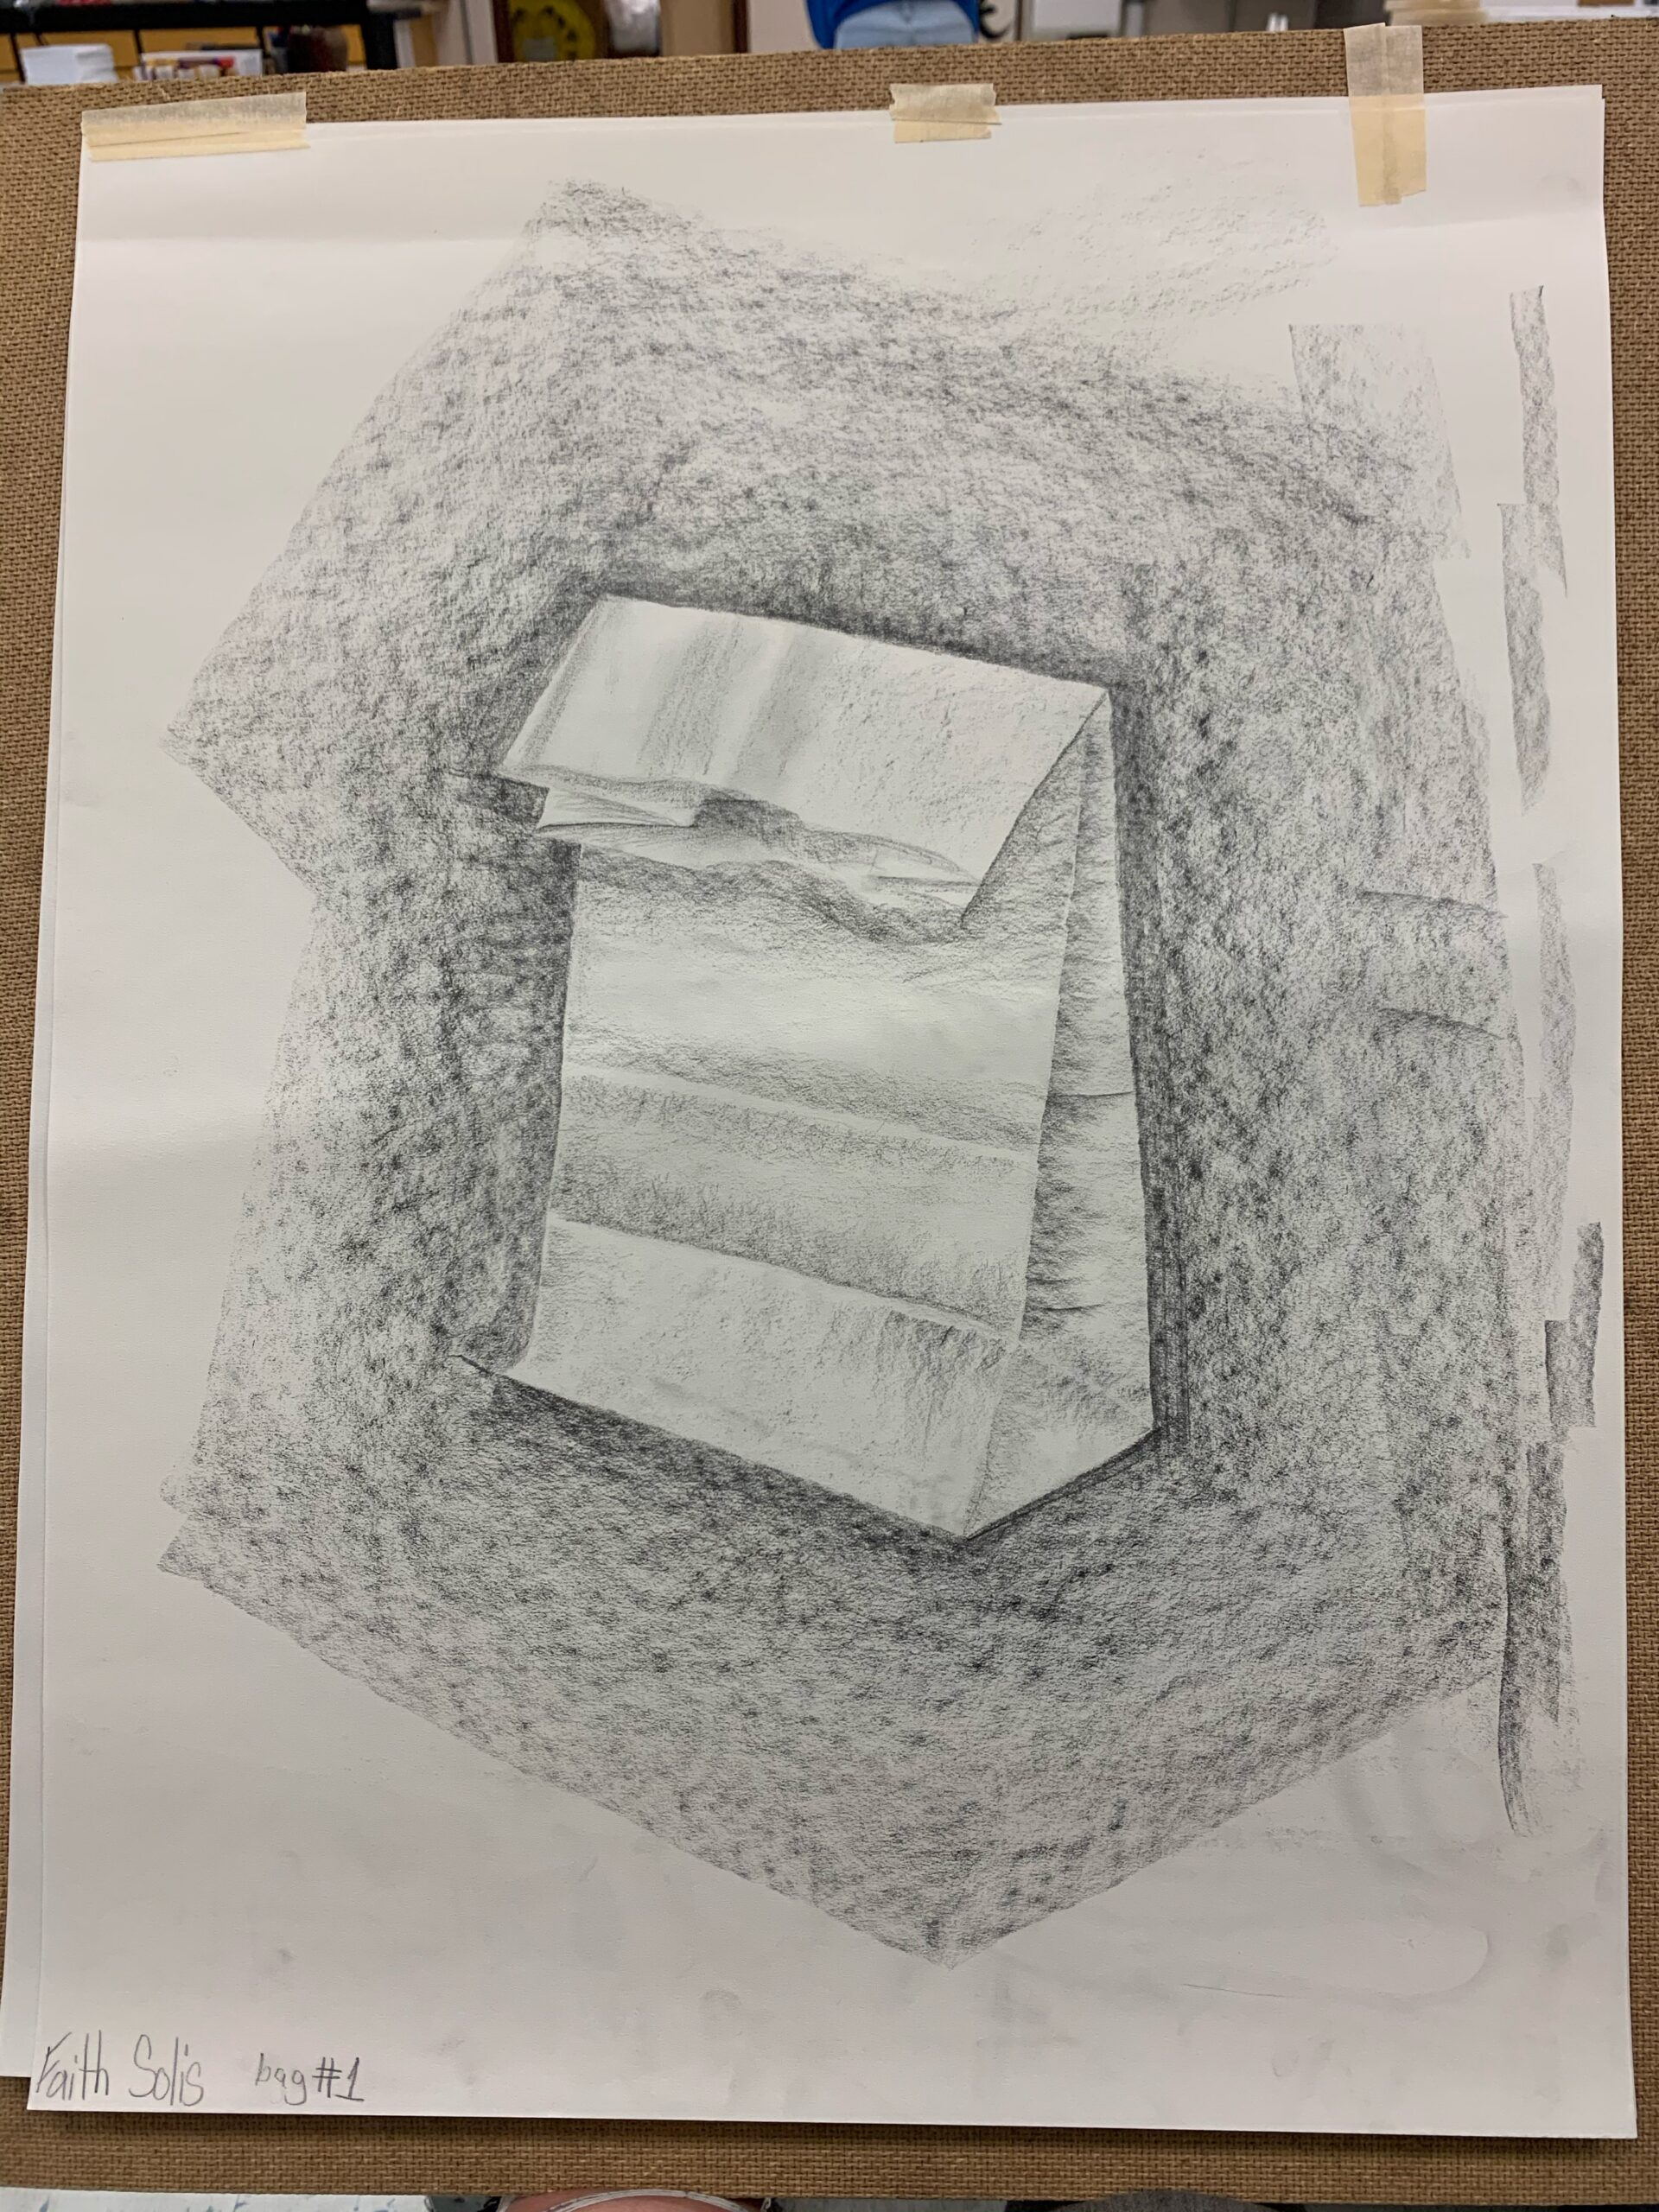 lunch sack done in charcoal